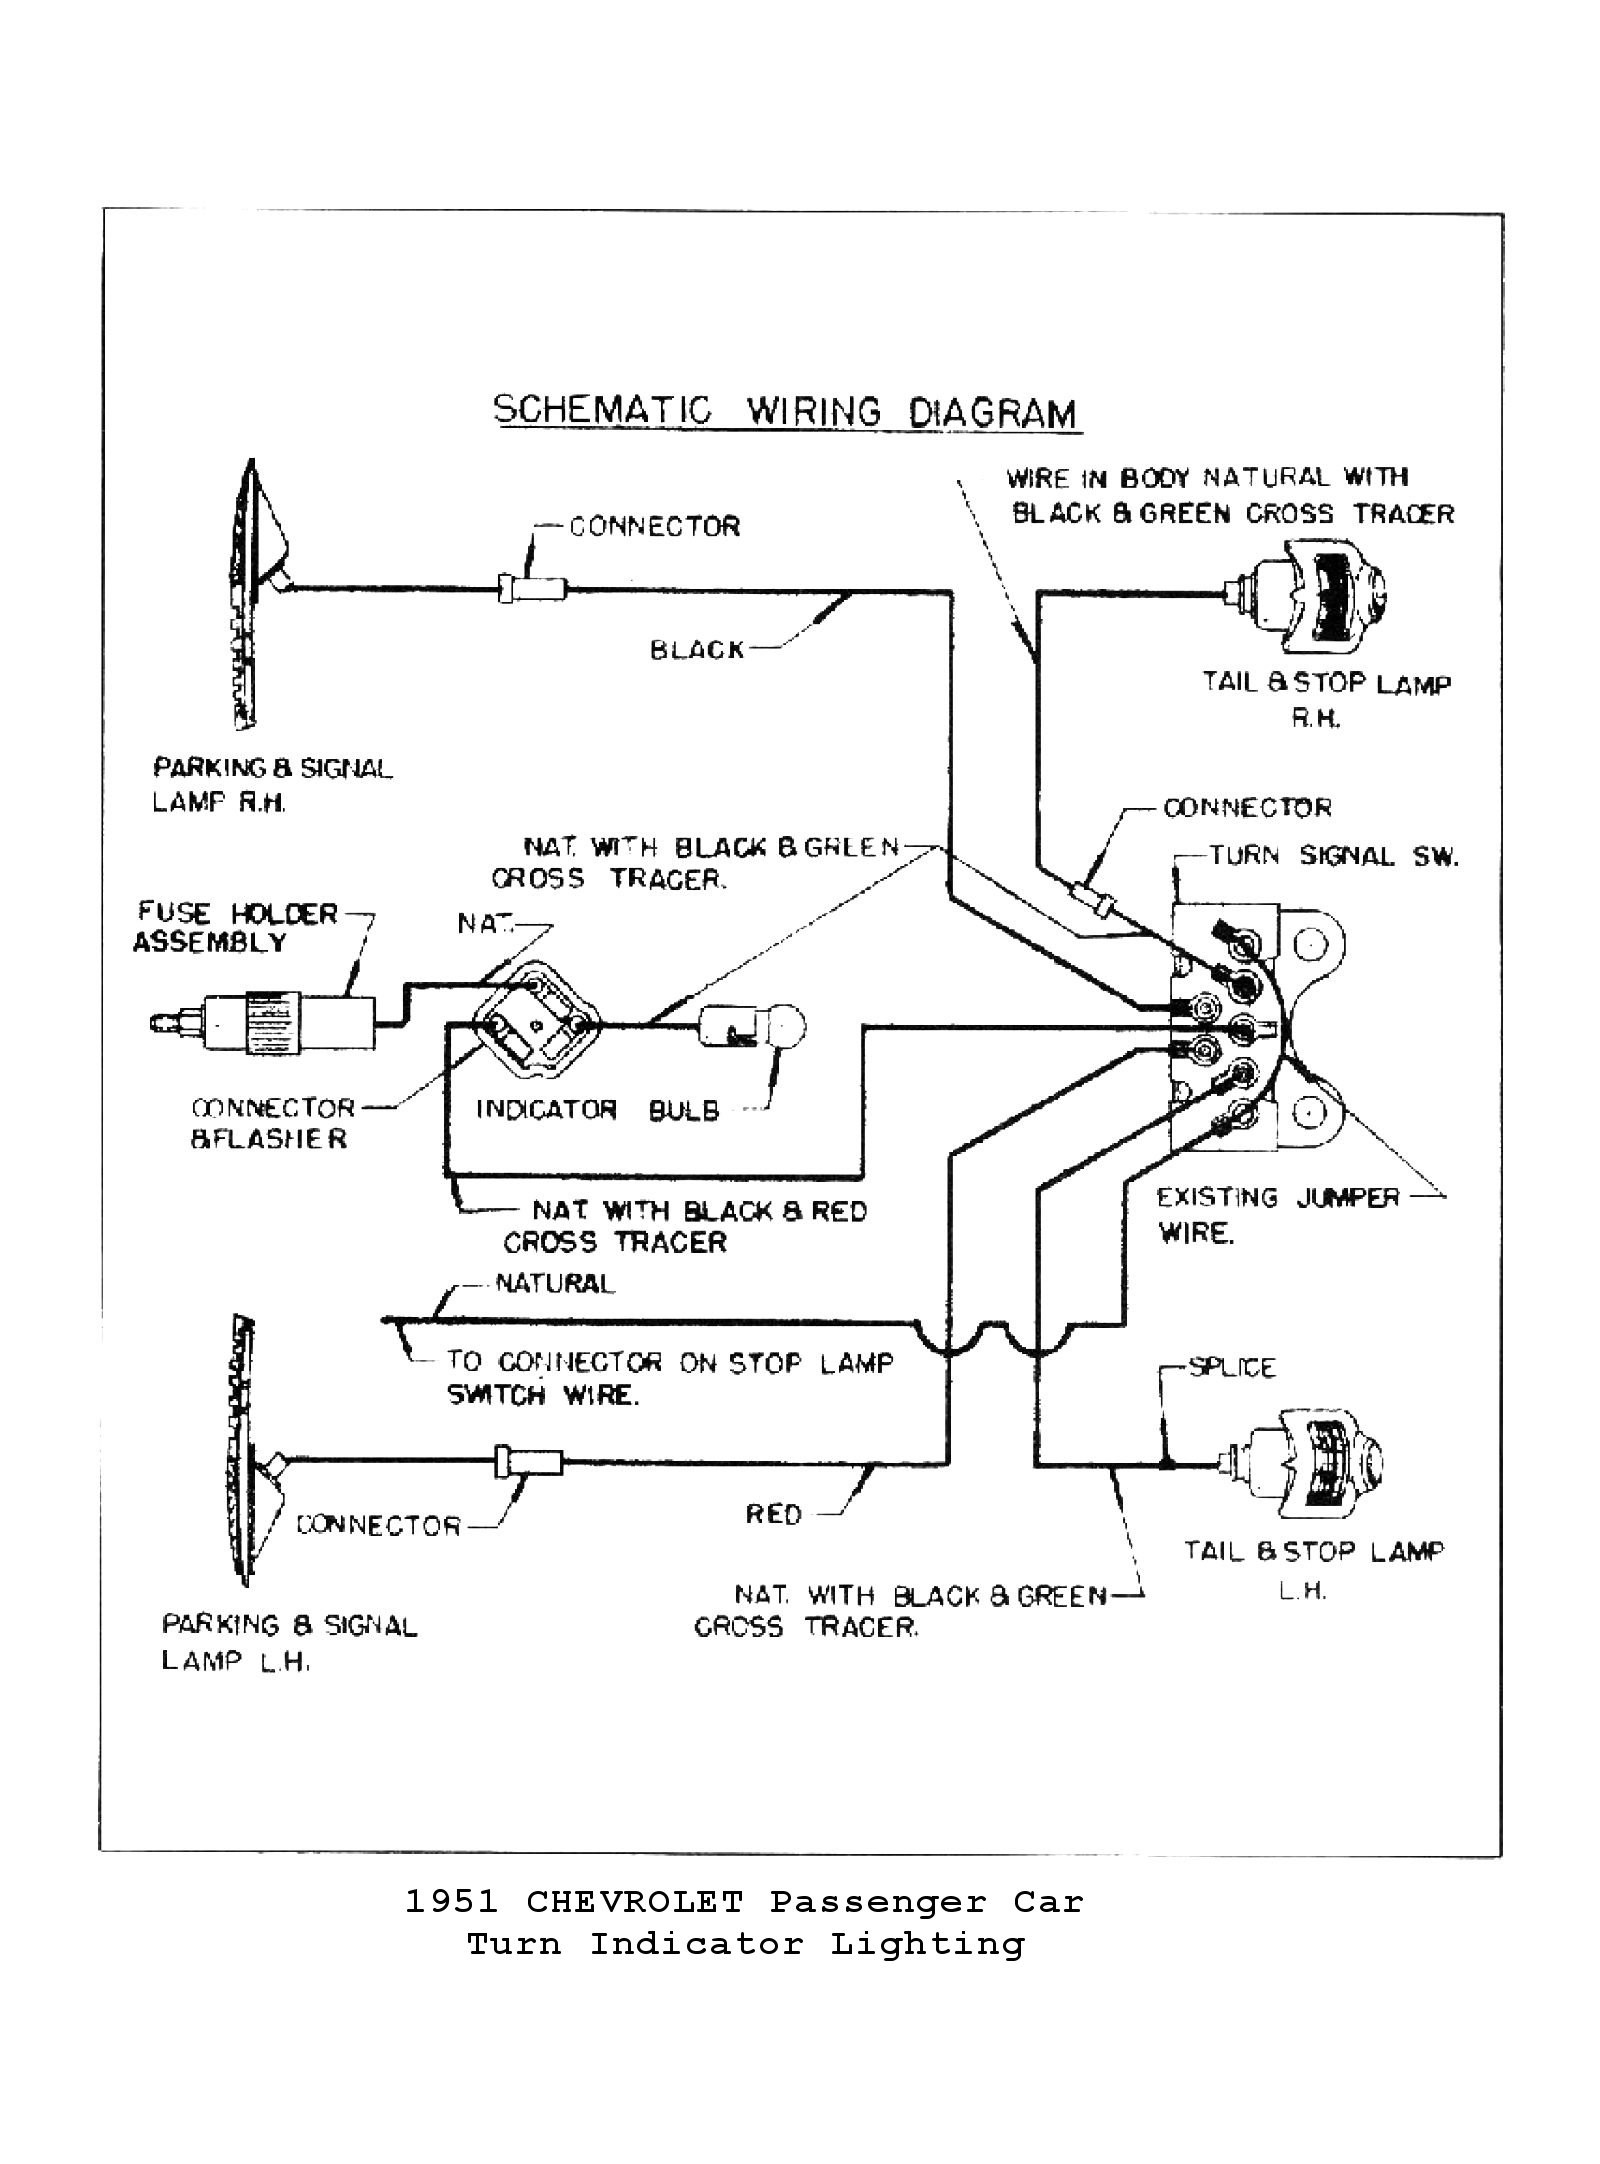 Aftermarket Turn Signal Wiring Diagram Simple Options For Stat 700 Switch Image Lights 1951 Truck